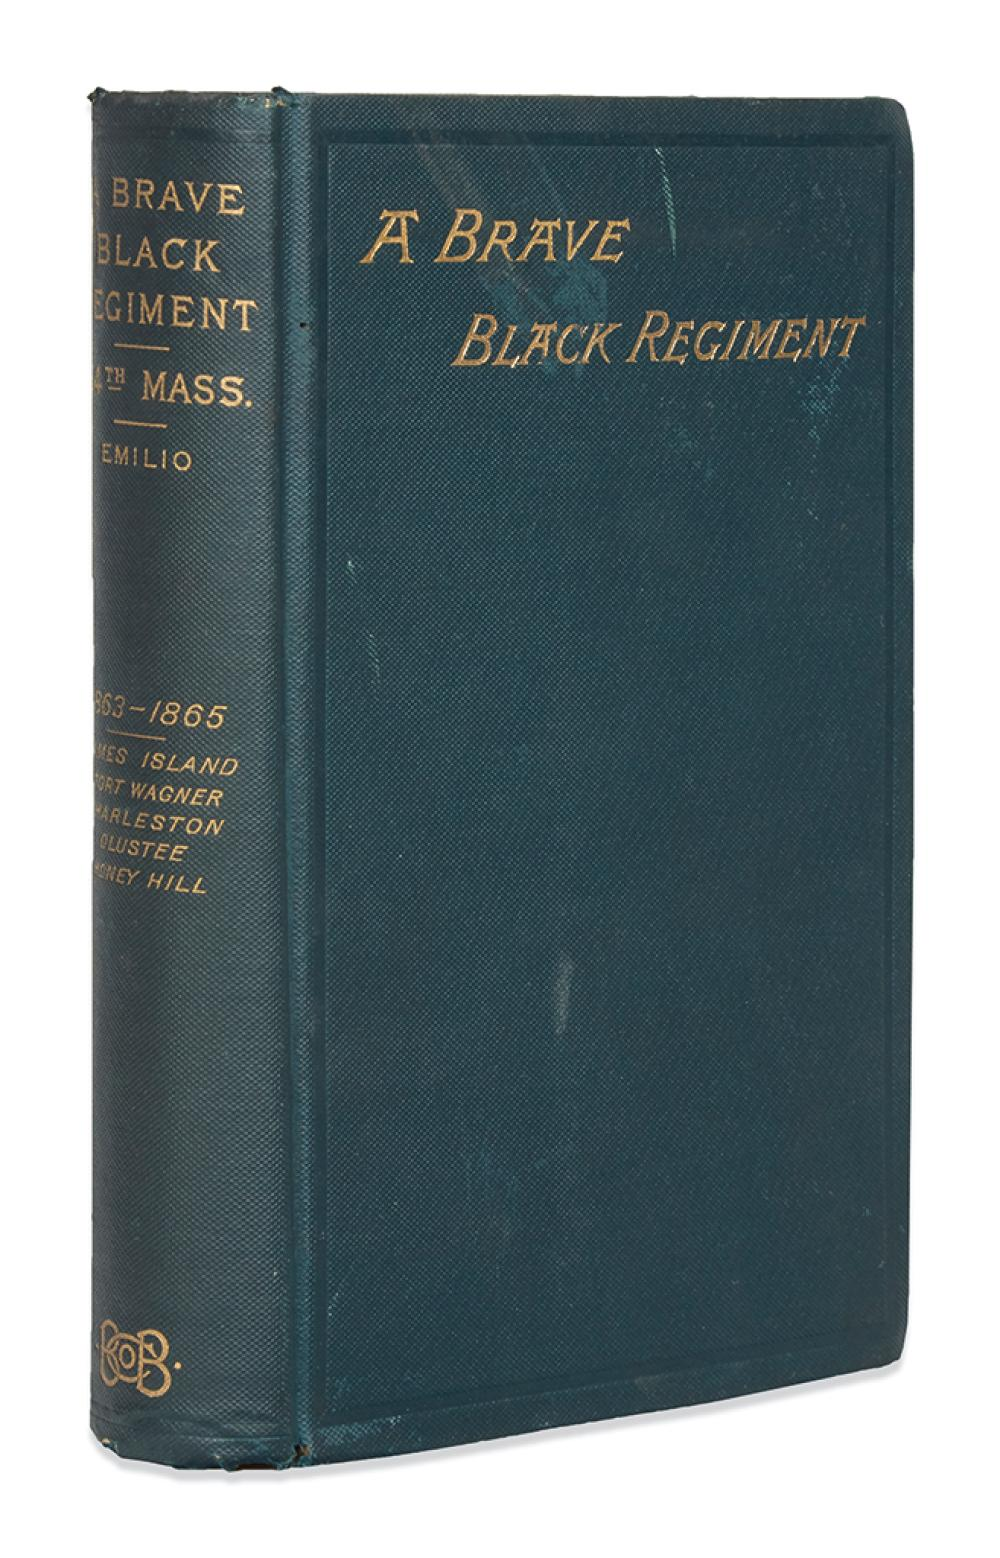 (MILITARY--CIVIL WAR.) Emilio, Luis F. History of the Fifty-Fourth Regiment of Massachusetts Volunteer Infantry.